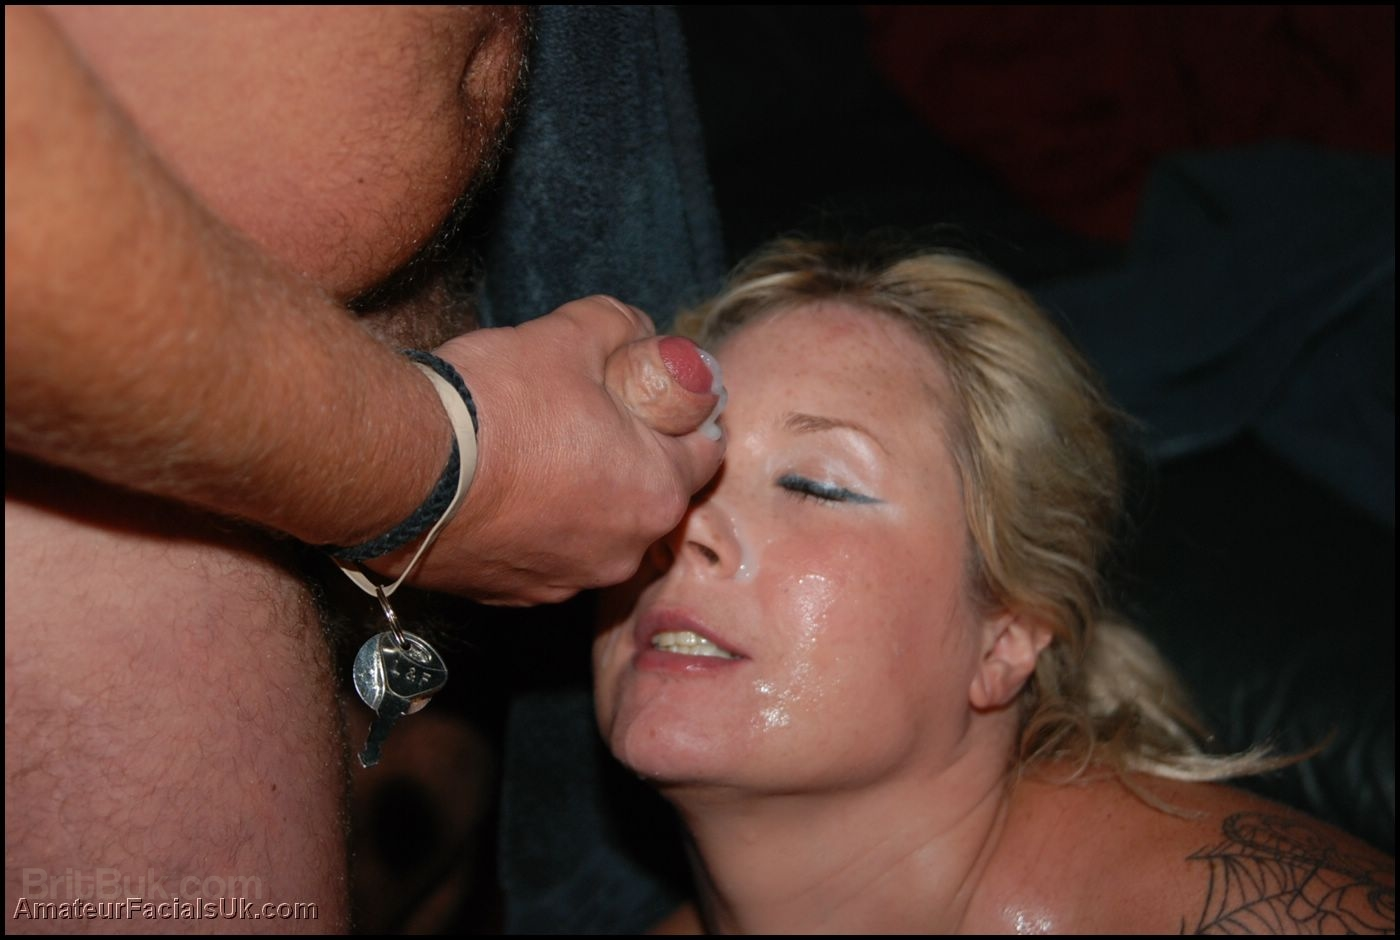 Nice ass bukkake cum facial on milf nice